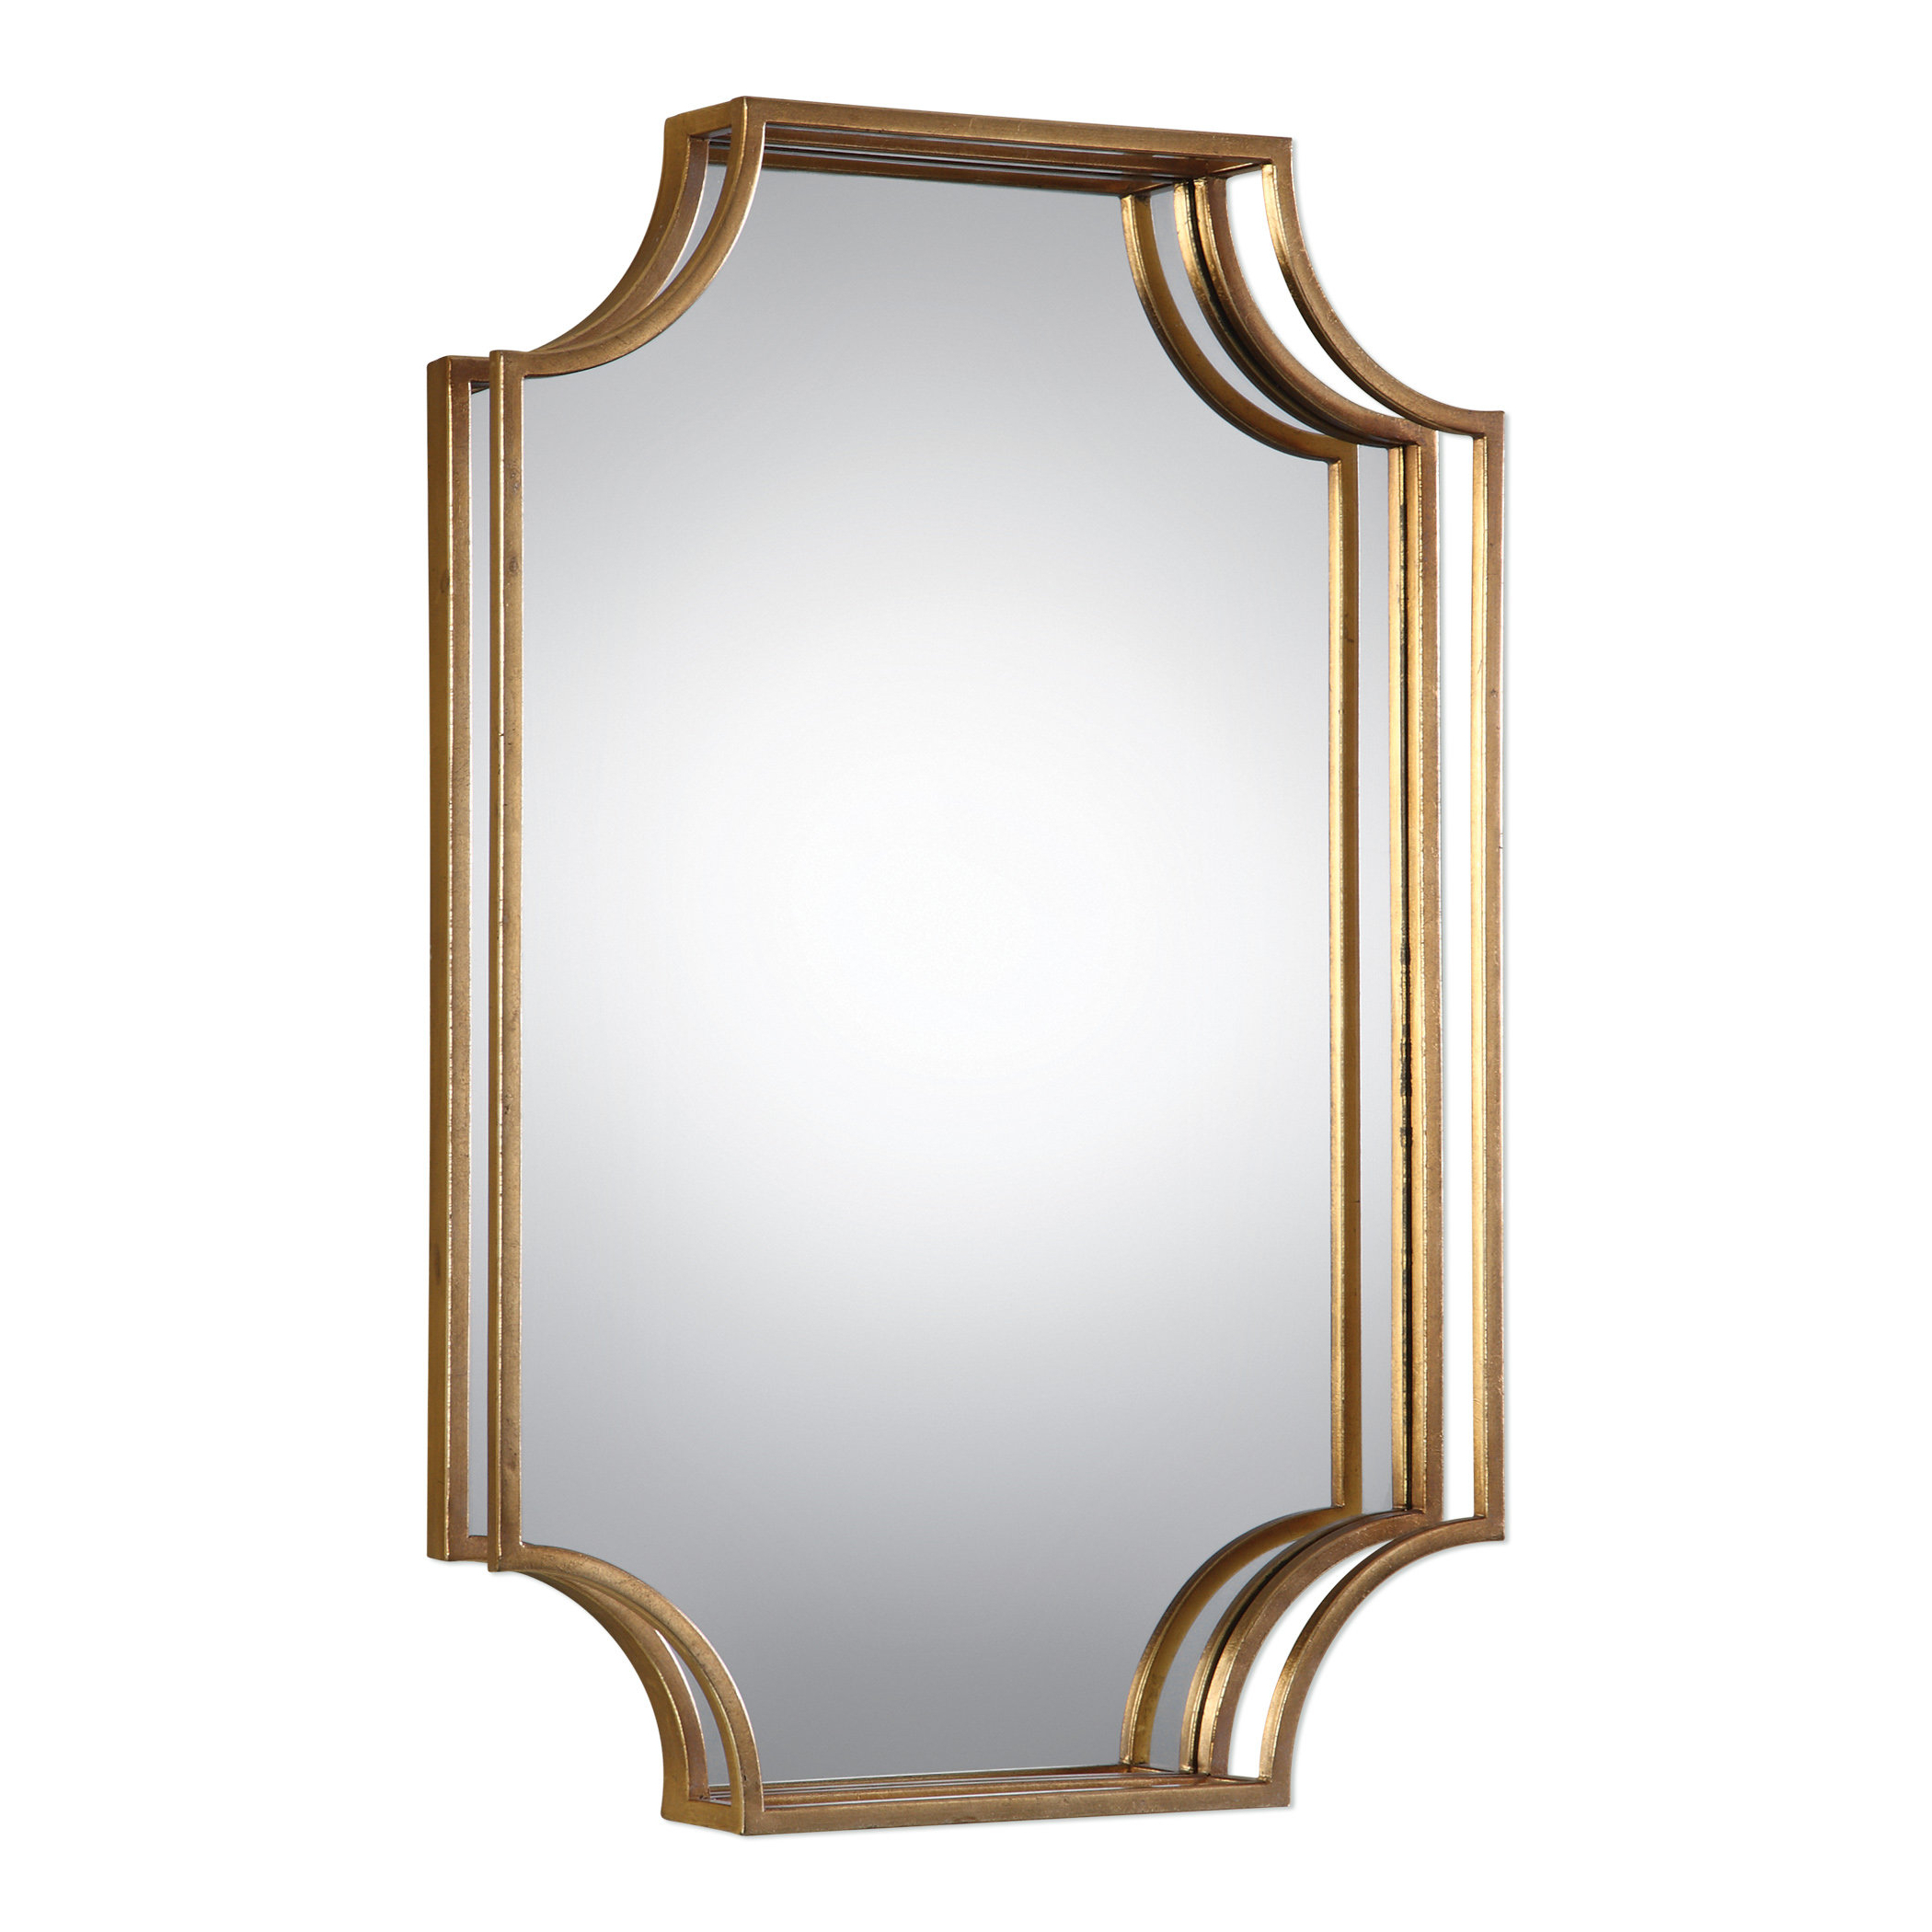 Vansickle Metal Accent Wall Mirror With Trendy Guidinha Modern & Contemporary Accent Mirrors (View 11 of 20)